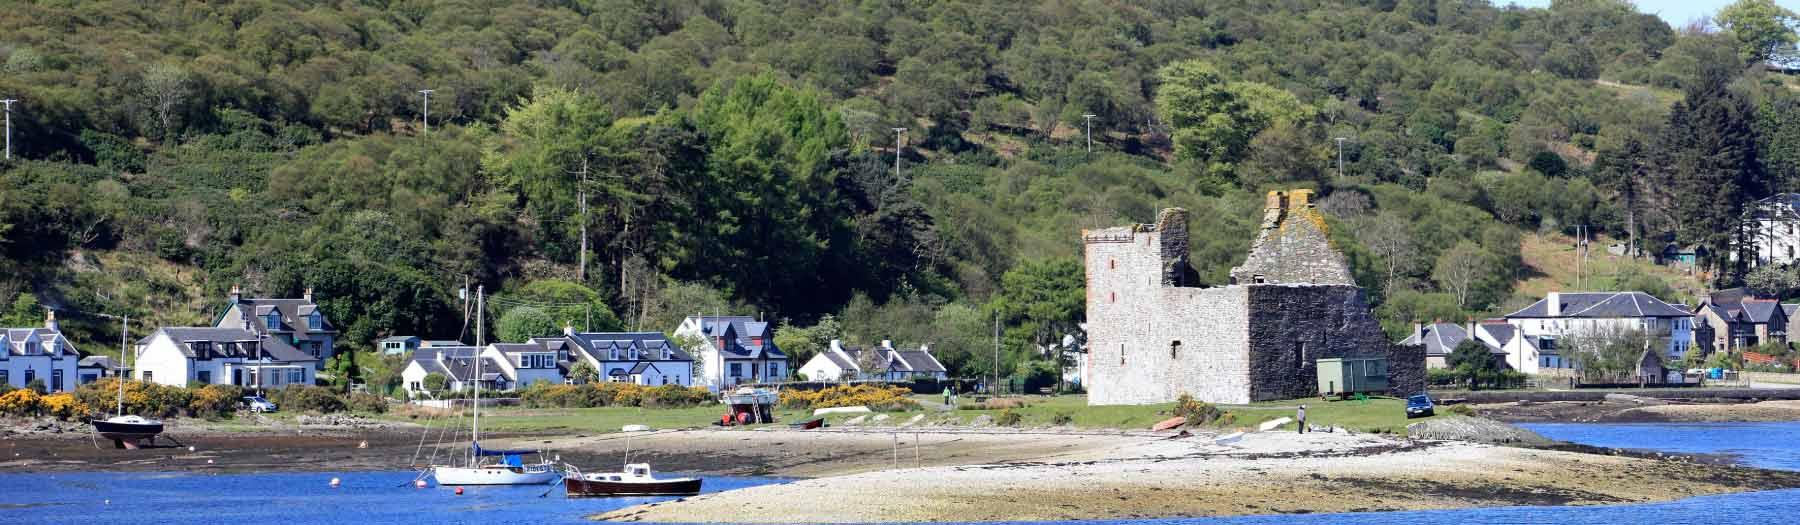 Image: Lochranza Castle. Credit: Image used with permission from VisitScotland and Scottish Viewpoint.